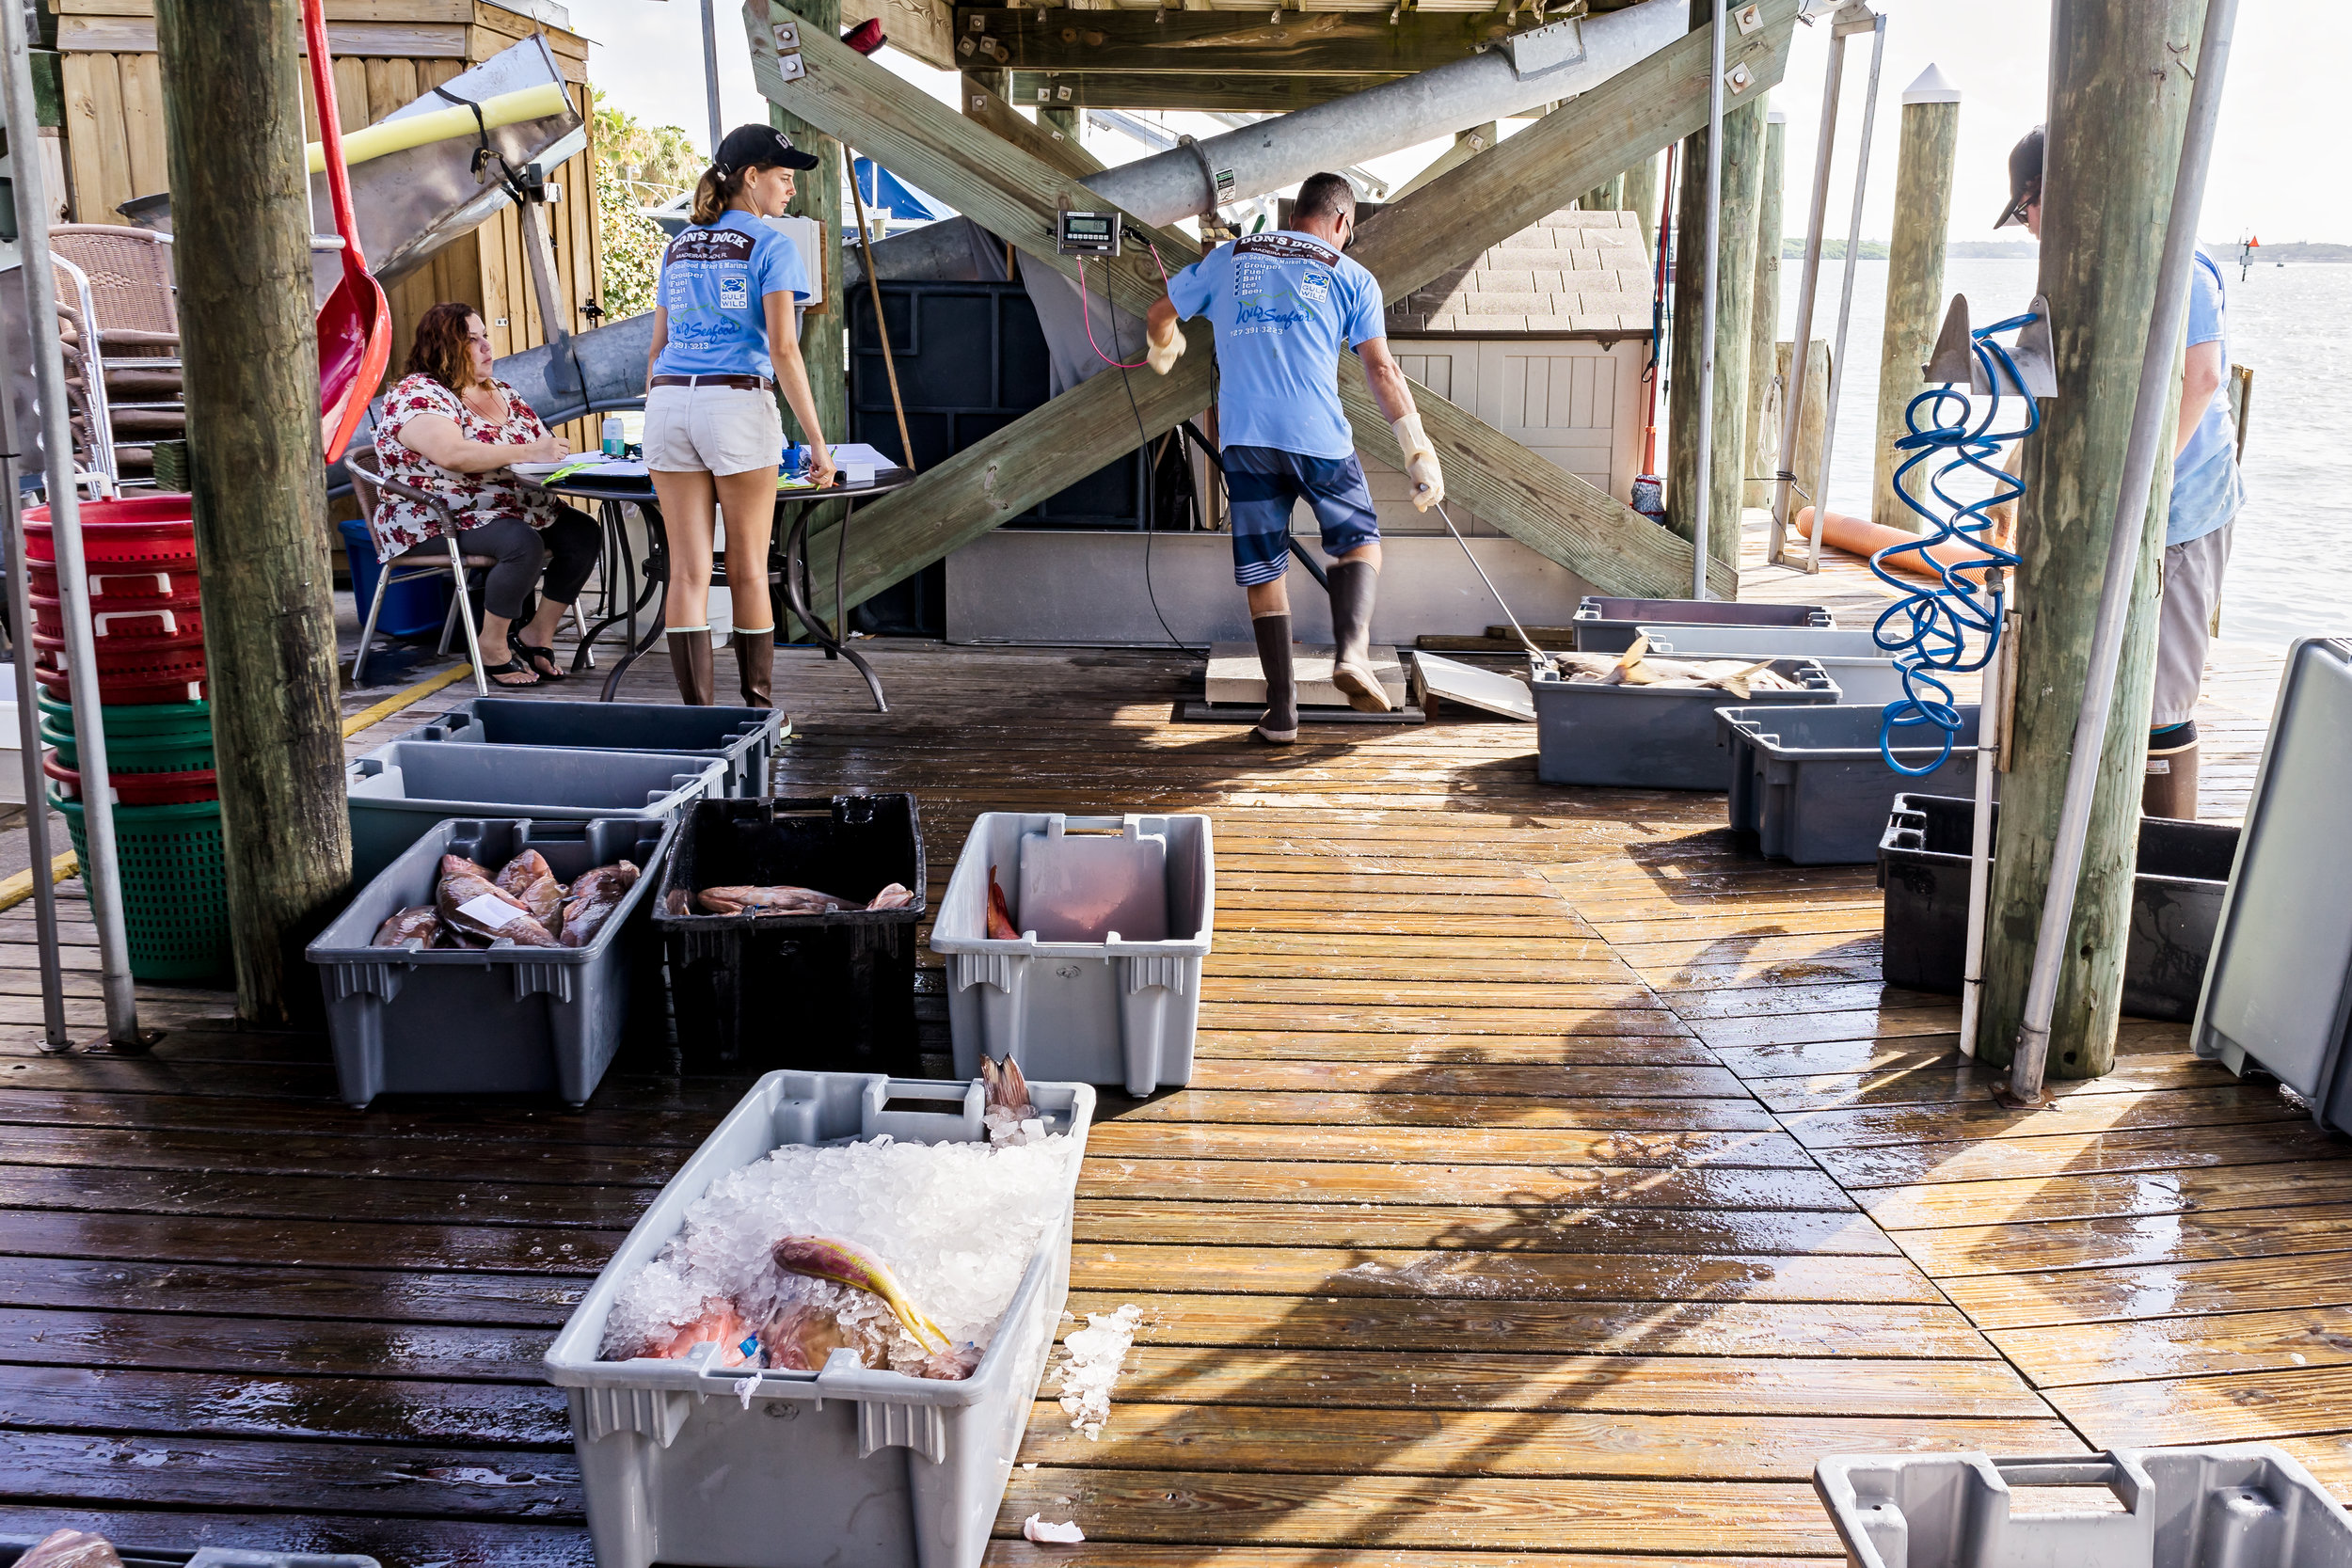 The Wild Seafood crew wrapping up operations for the day.